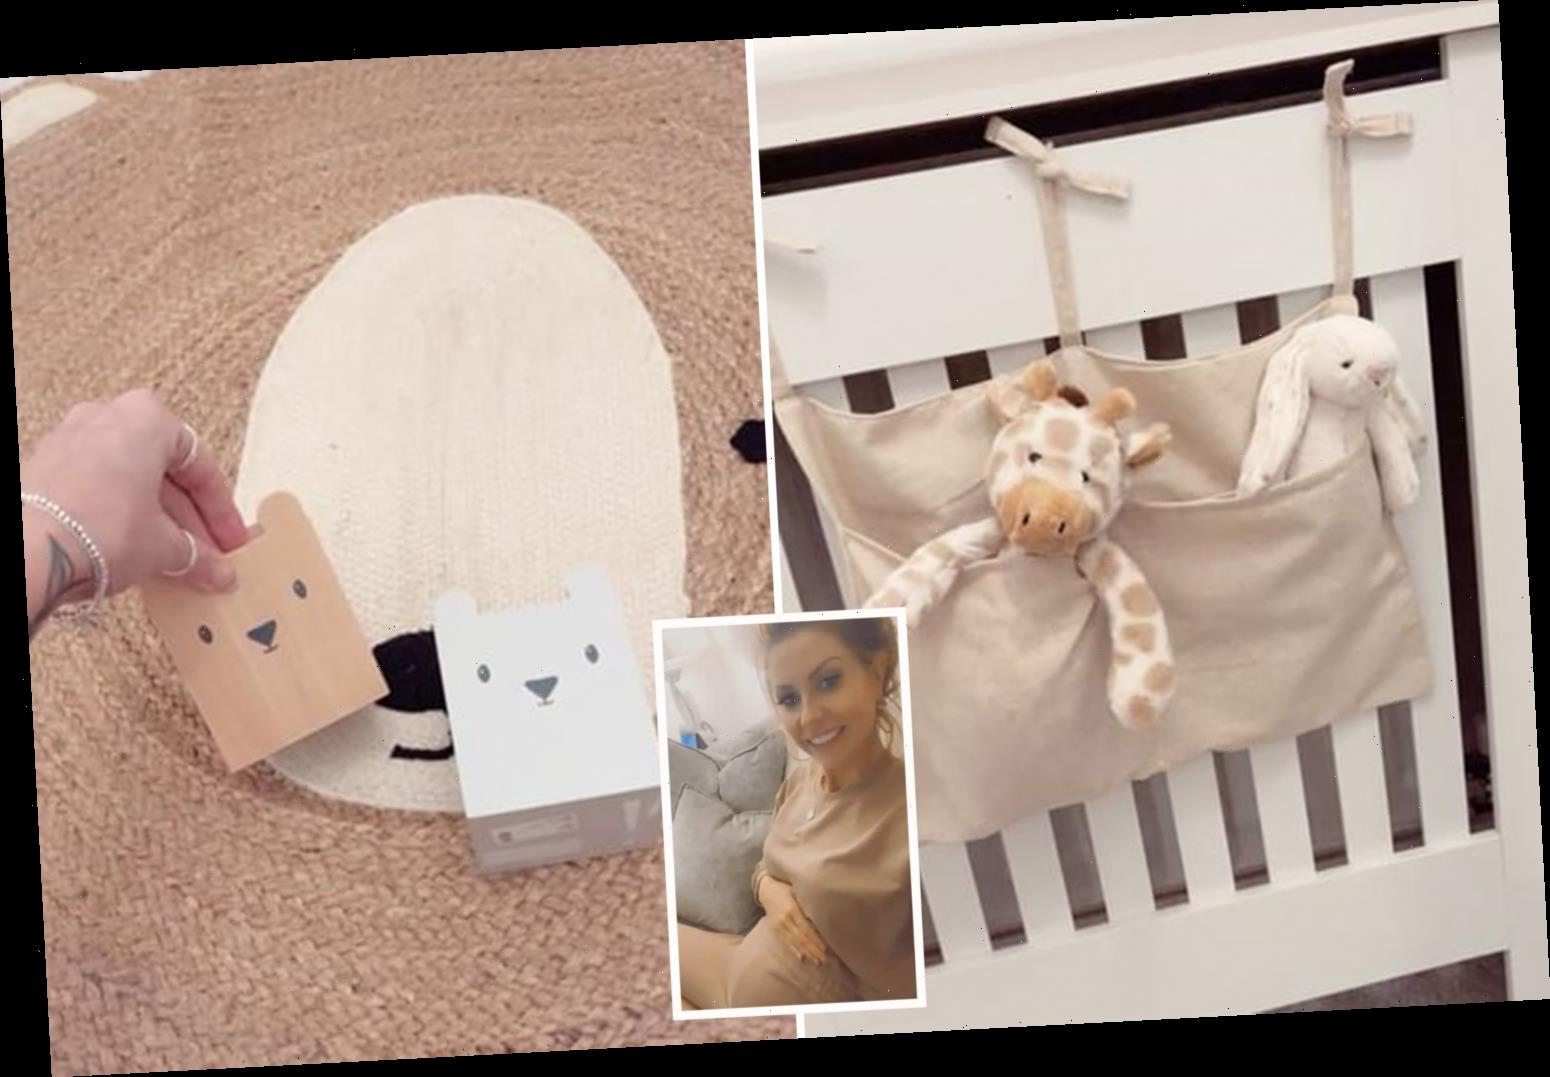 Mrs Hinch shows off her HUGE H&M & eBay haul for her new baby's nursery as she reveals progress